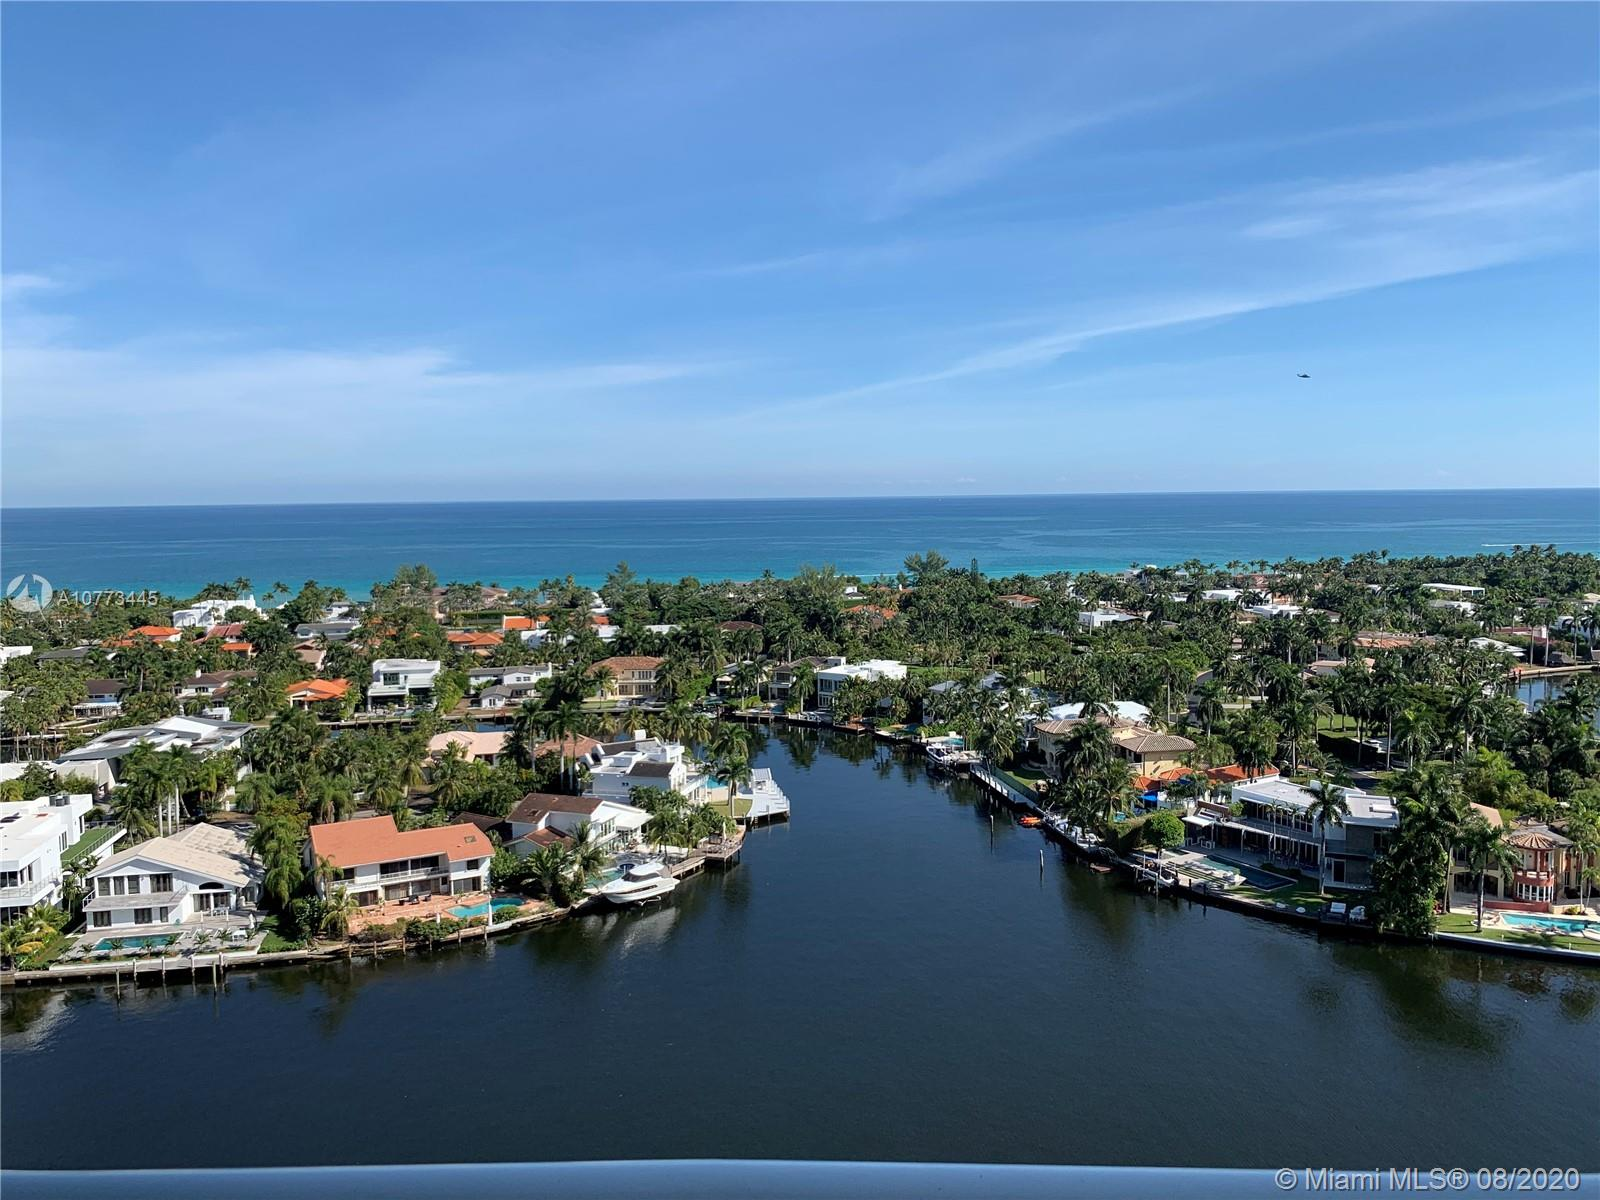 BEST LINE IN THE BUILDING, A HOUSE IN THE SKY, DIRECT VIEWS TO OCEAN, INTRACOASTAL, GOLF AND CITY, UNIT HAS A LOT OF IMPROVEMENTS, ±$50K SMARTHOME SYSTEM, AUTOMATIC BLINDS, ELECTRIC STORM SHUTTERS, TWO NEW AIR CONDITIONING UNITS, NEW WASHER AND MORE. BLDG OFFERS TWO POOLS, RESTAURANTS, MOVIE, SPA, GYM, CHILDREN PLAYGROUND, TENNIS, SECURITY. MUST SEE. EASY TO SHOW.